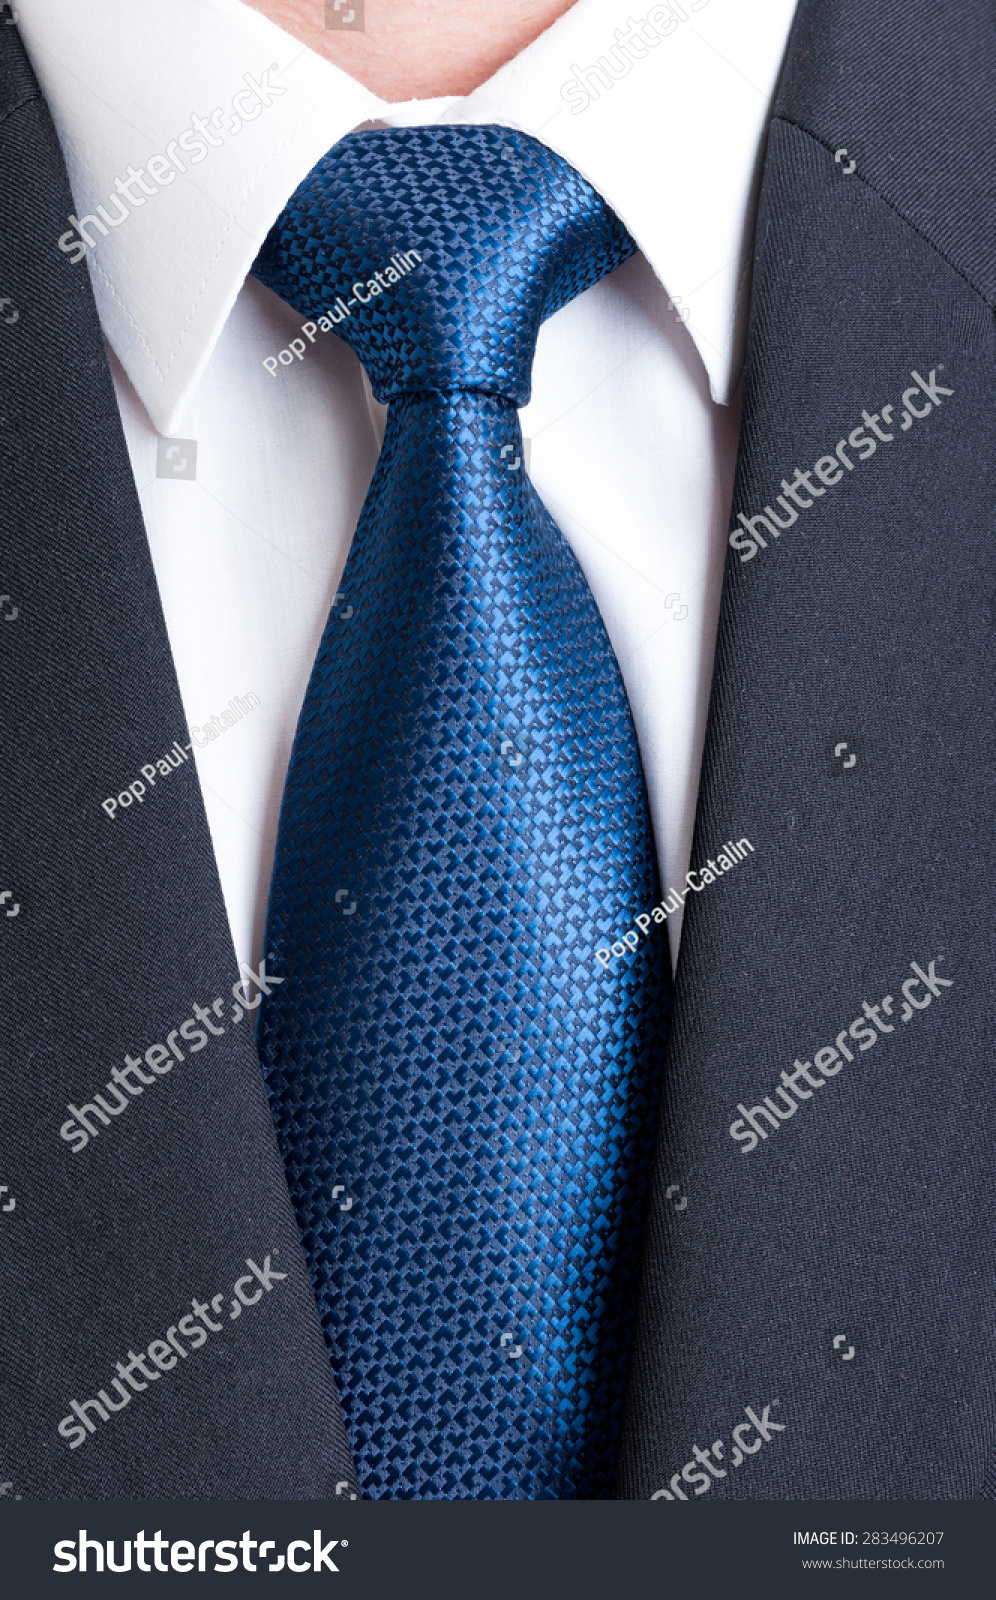 Black Suit White Shirt Blue Tie Stock Photo 283496207 - Shutterstock